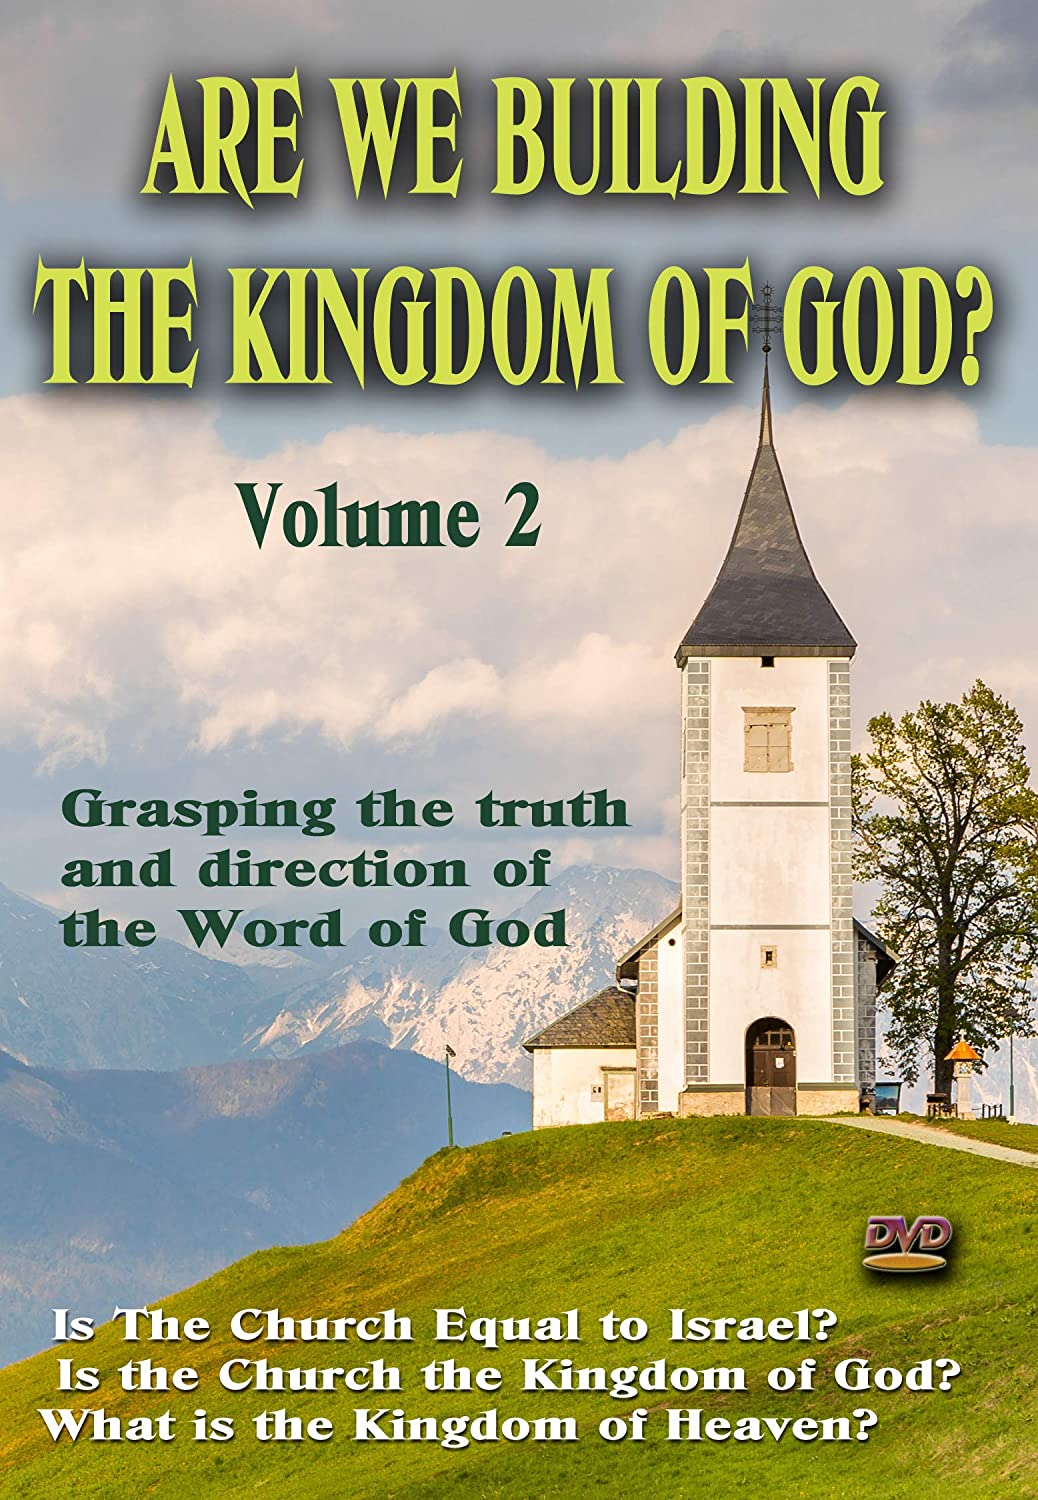 Are We Building the Kingdom of God, Vol. 2